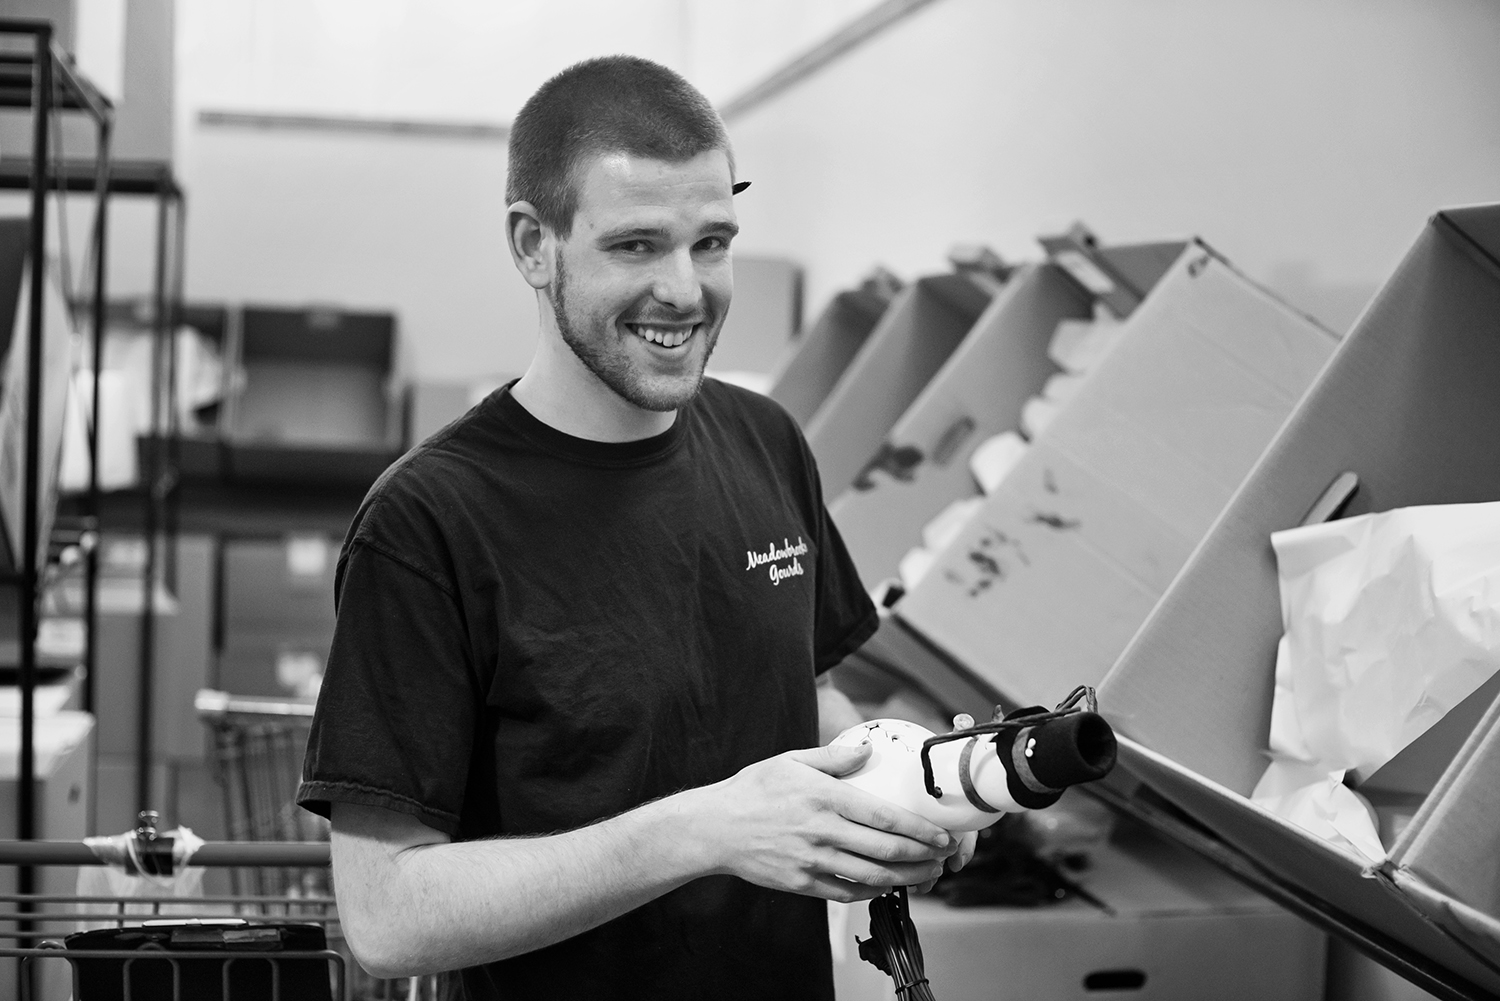 Get to Know our Expert Shipper, Nathan